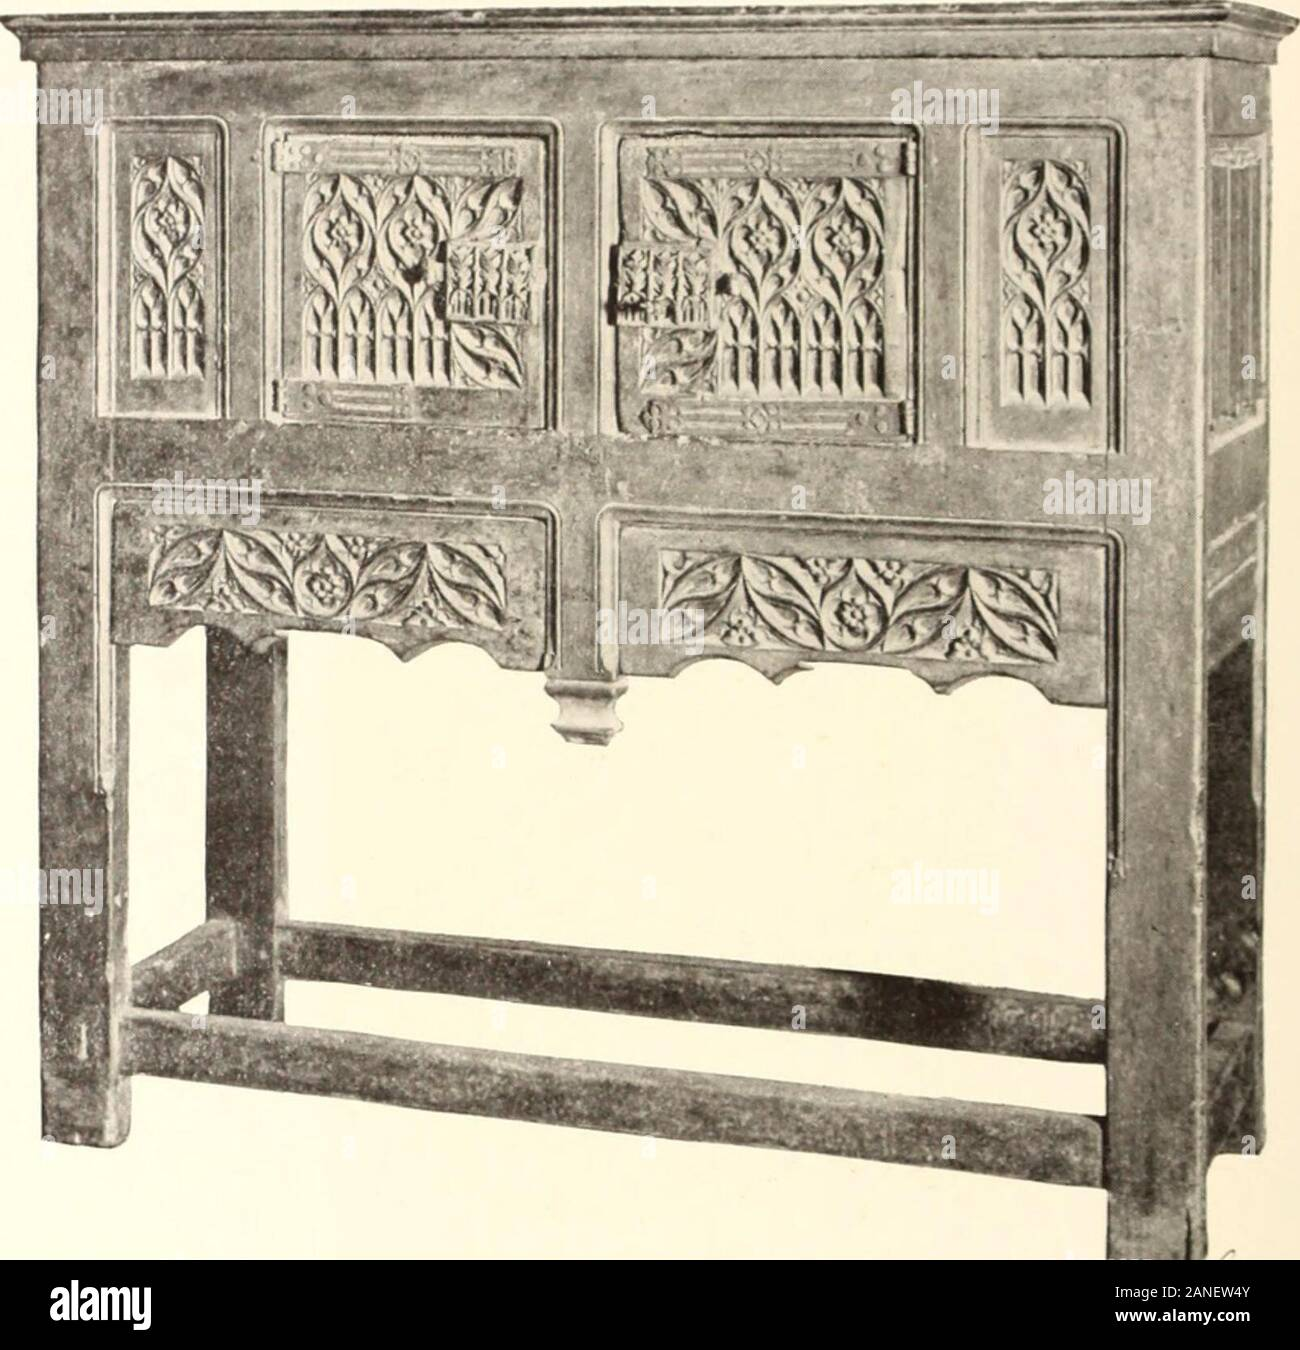 Illustrated catalogue of the exceedingly rare and valuable art treasures and antiquities formerly contained in the famous Davanzati Palace, Florence, Italy . 420—Sixteenth Century Ligurian Walnut Cabinet^Rectangular shape, divided horizontally into two parts. The / upper part, with deep molded cornice, is arranged into two cup-boards with hinged raised panel doors decorated in paintedchiaroscuro work, with shaped bronze keyhole escutcheons, andseparated by three pilaster-like panels richly carved, in a designof scrolled strapwork and oval medallions. The lower portion,separated by a heavy mold Stock Photo